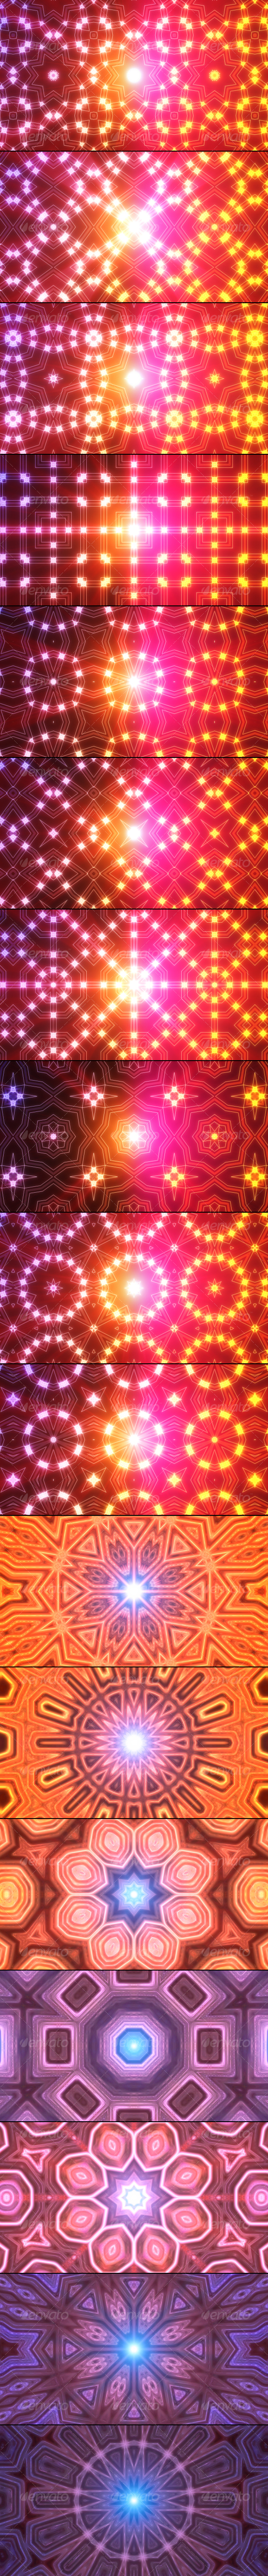 Kaleidoscopic backgrounds Mega Pack - Abstract Backgrounds